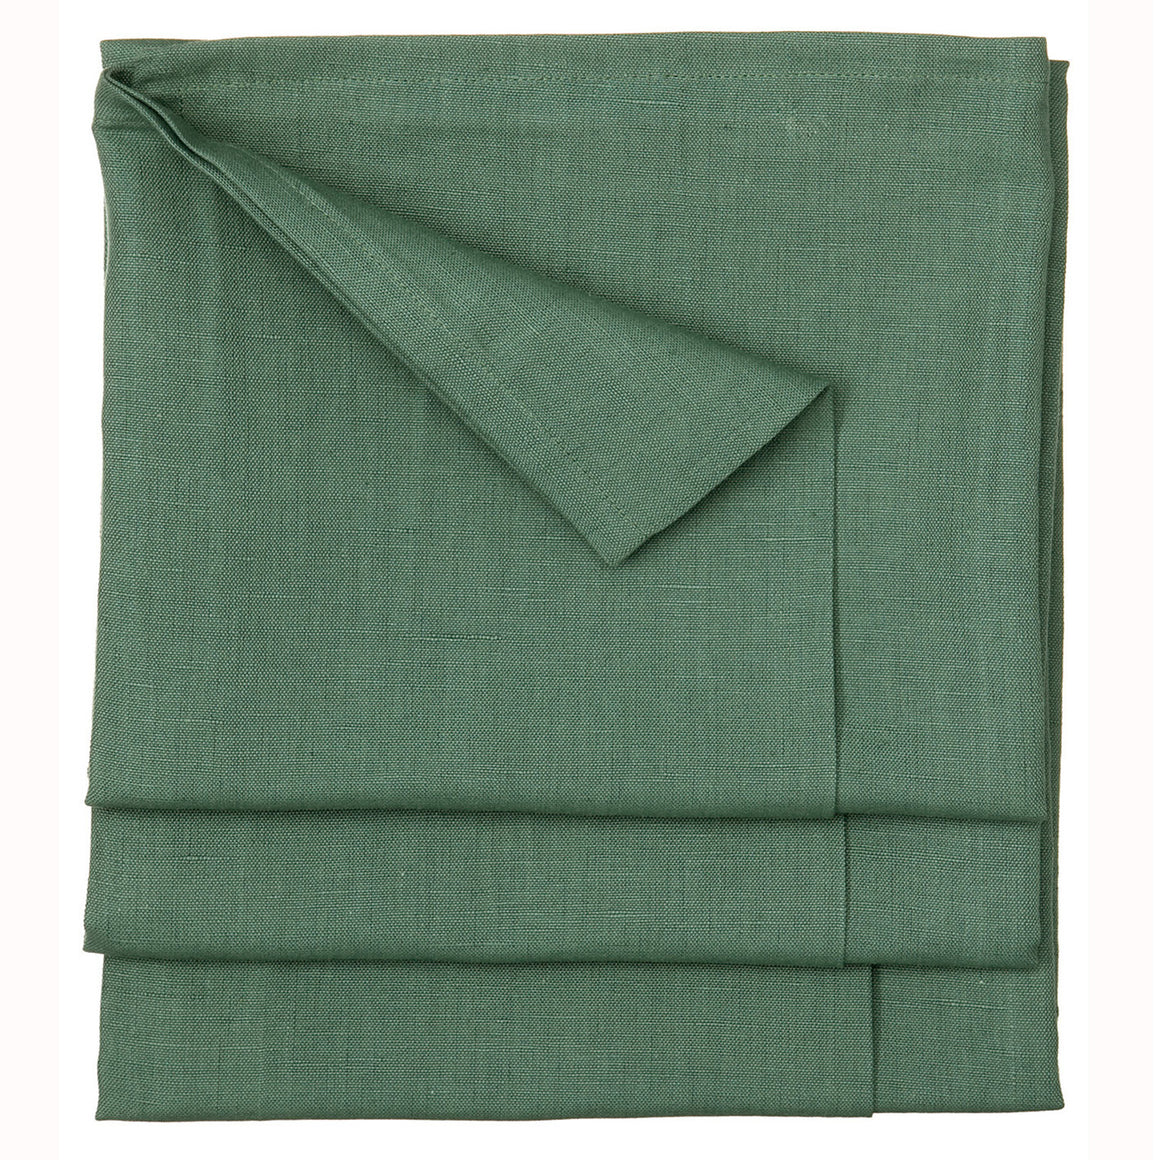 Solid Green Dyed Cotton Linen Tablecloth in Moss Green Stain Resistant finish ship from Canada (USA)